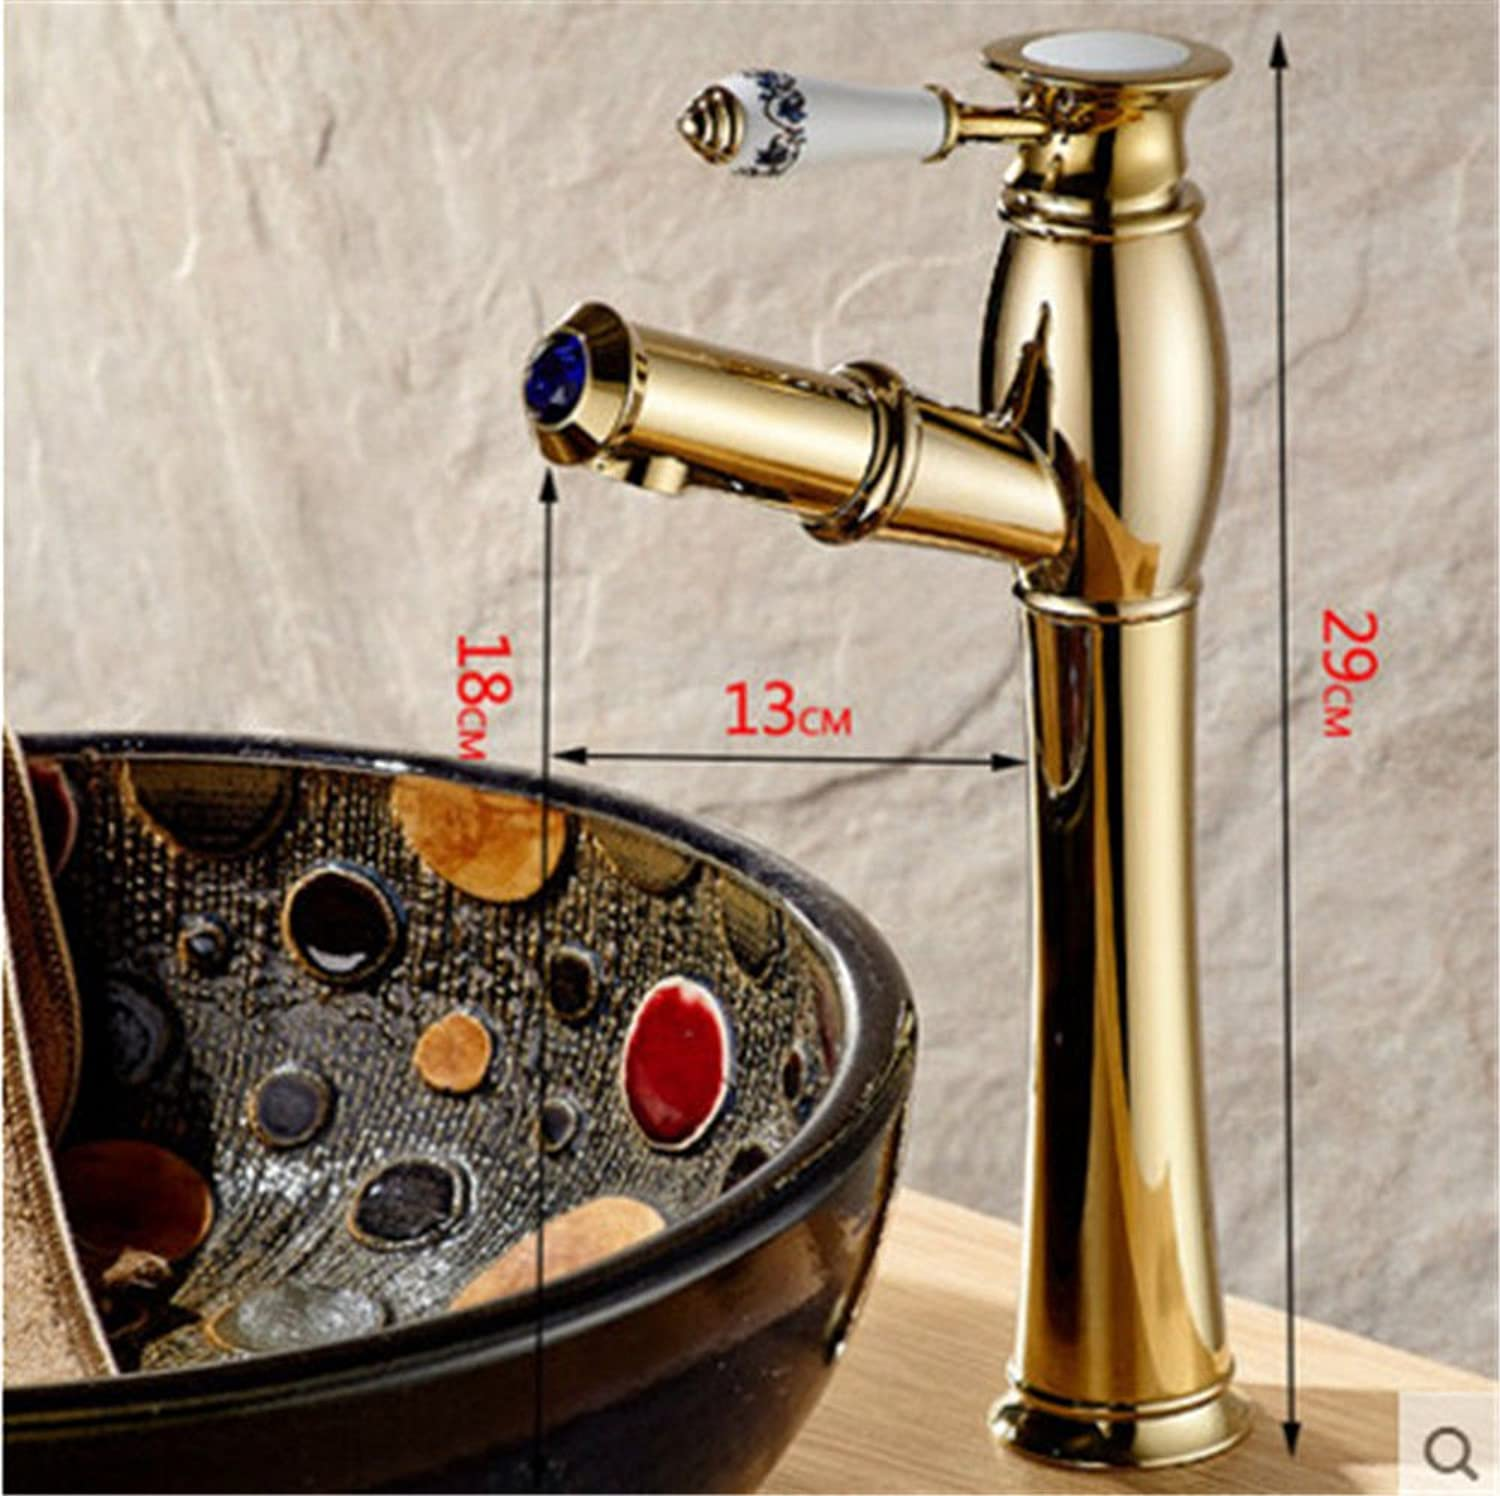 Gyps Faucet Basin Mixer Tap Waterfall Faucet Antique Bathroom ?Antique kitchen faucet ceramic switch single-full copper Mixer Taps and cold water pull basin mixer J